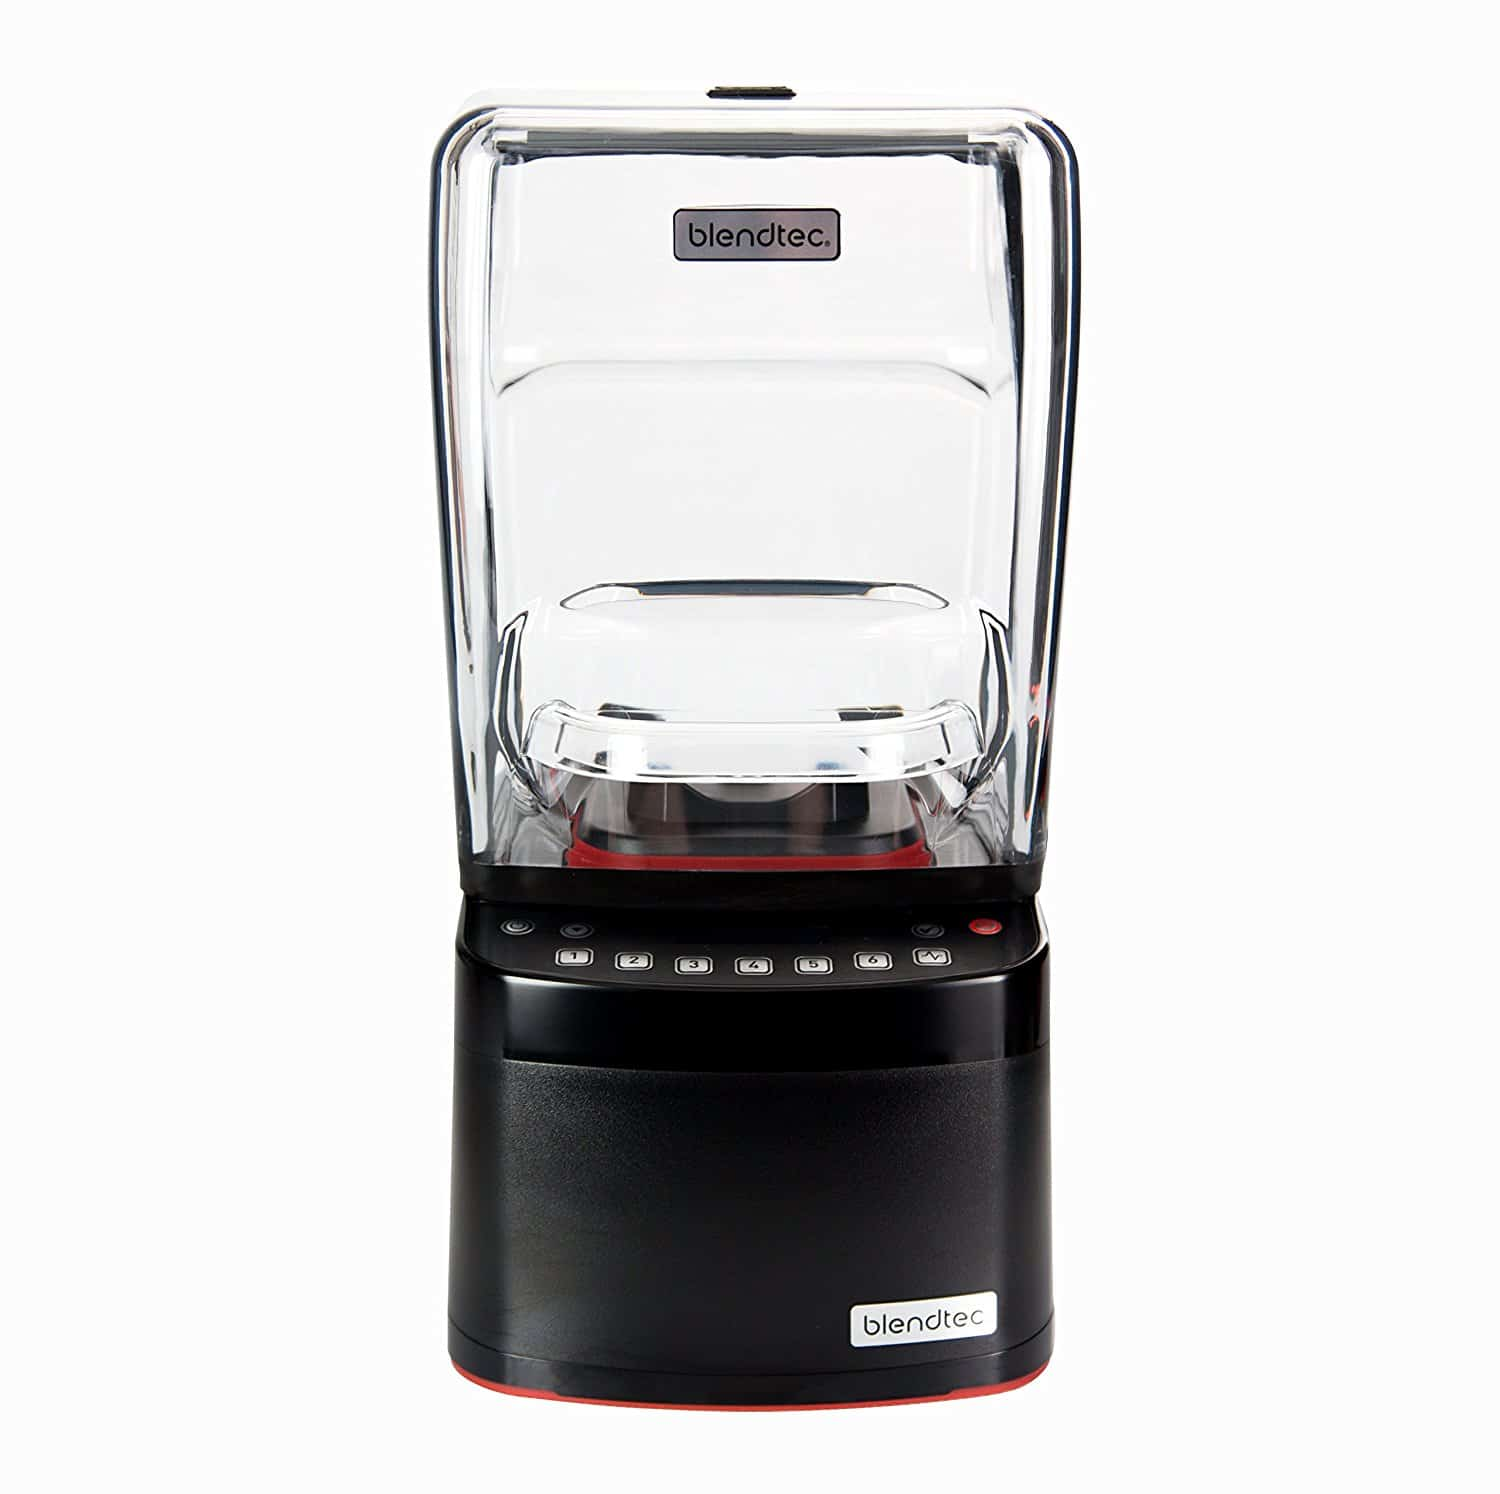 BlendTec Stealth + 3 FREE Cases of Cappuccine